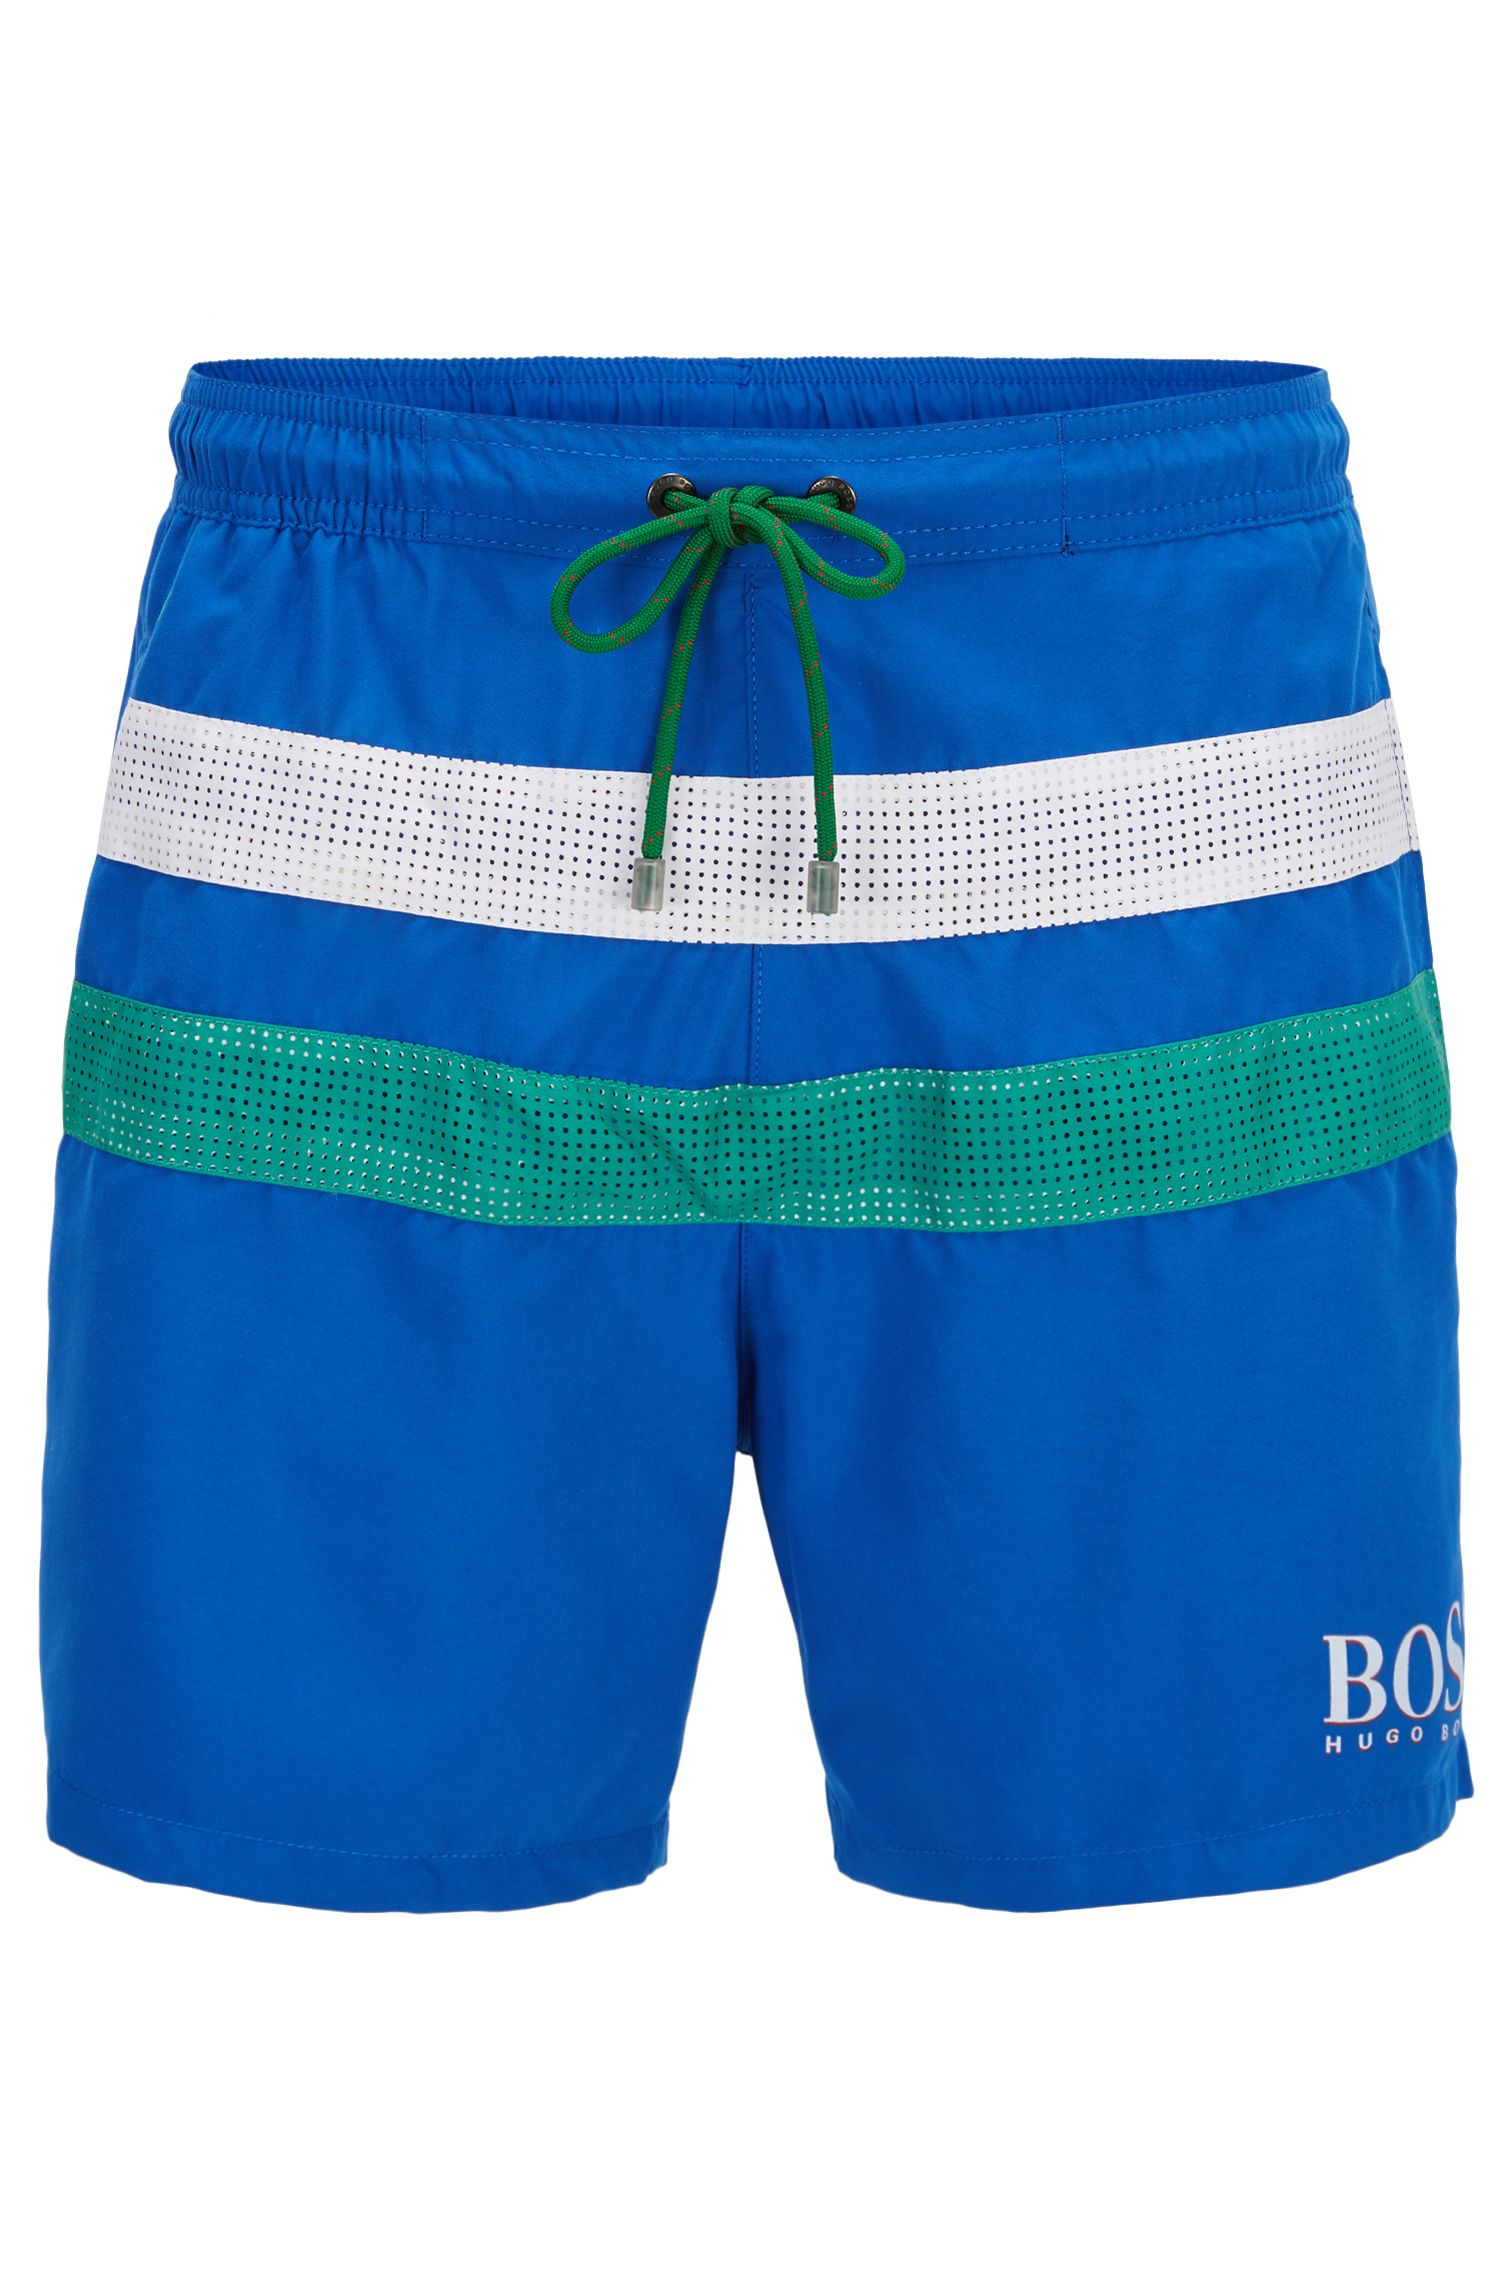 Flag Quick Dry Swim Trunk | Footballfish